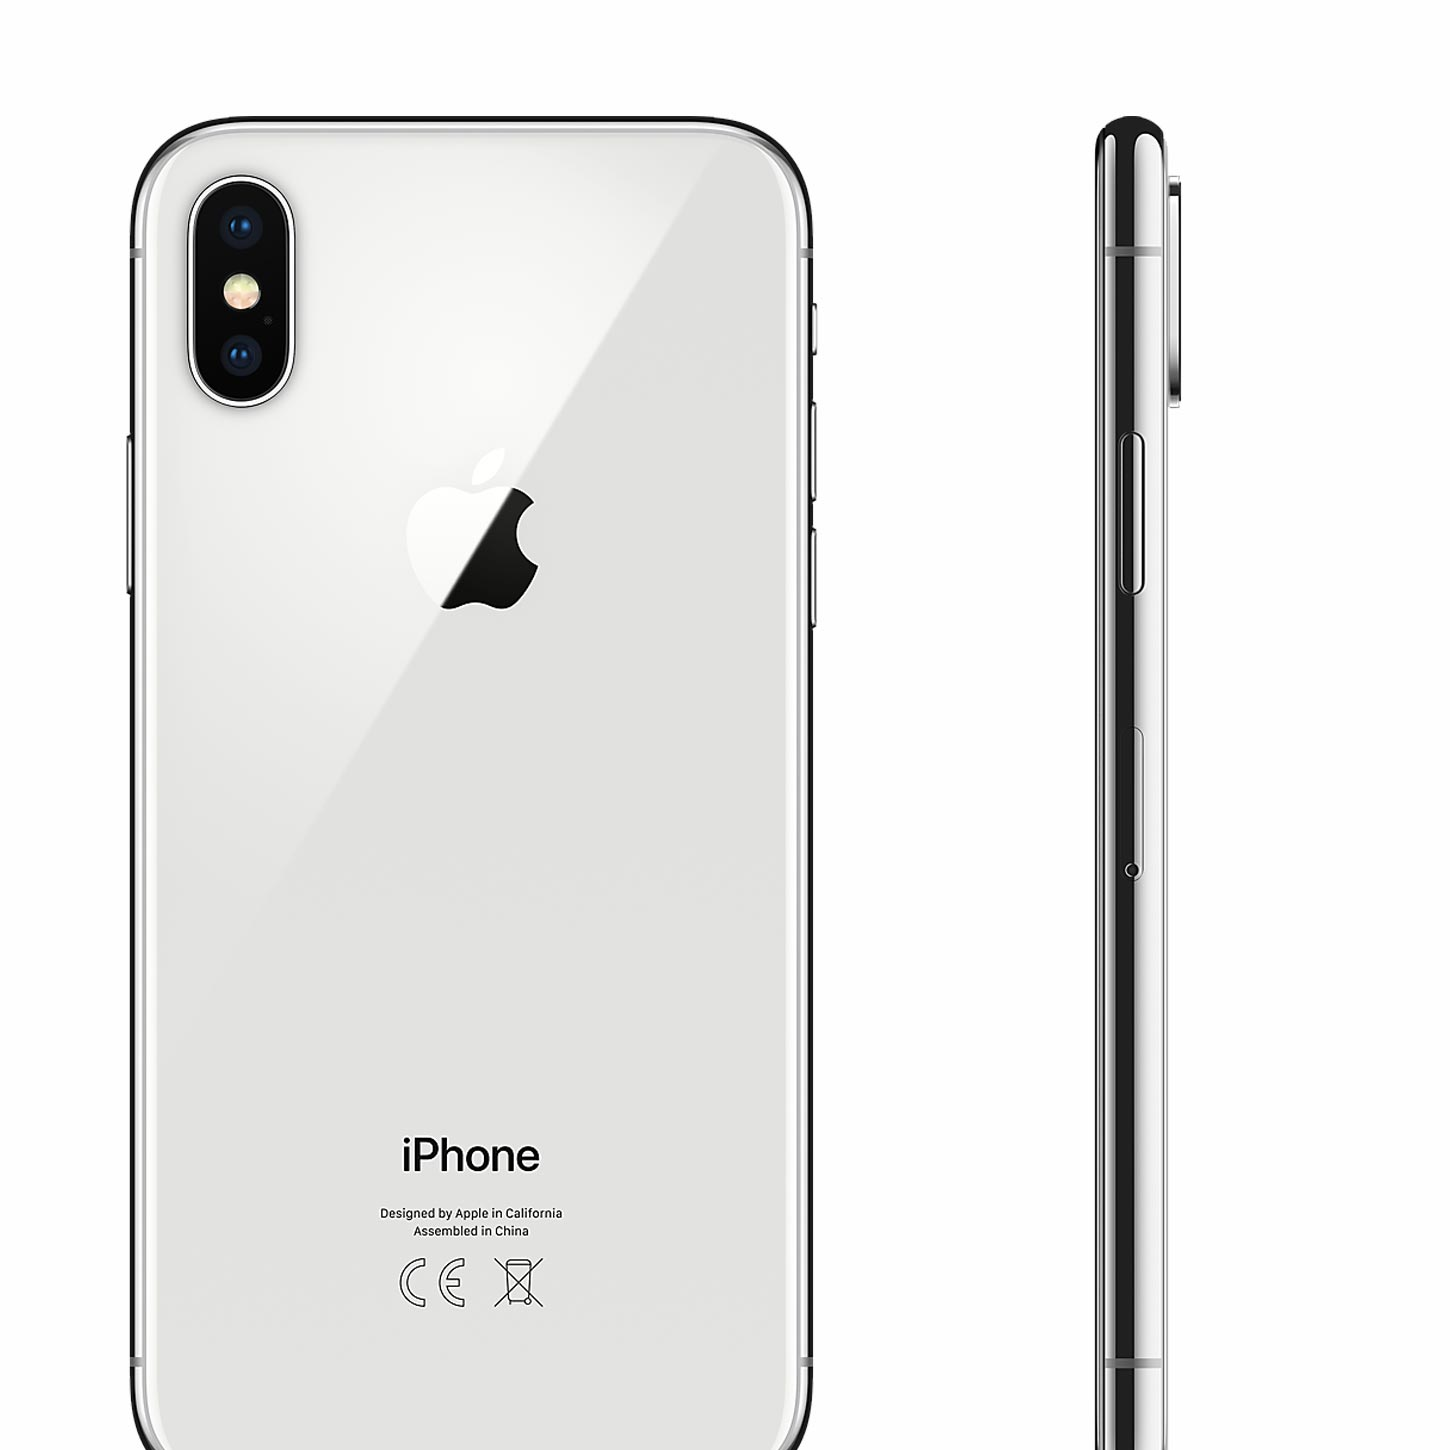 Apple Iphone X 64gb Silver Sim Free Unlocked Refurbished Smartphone 6 Refrubish Tempered Glass